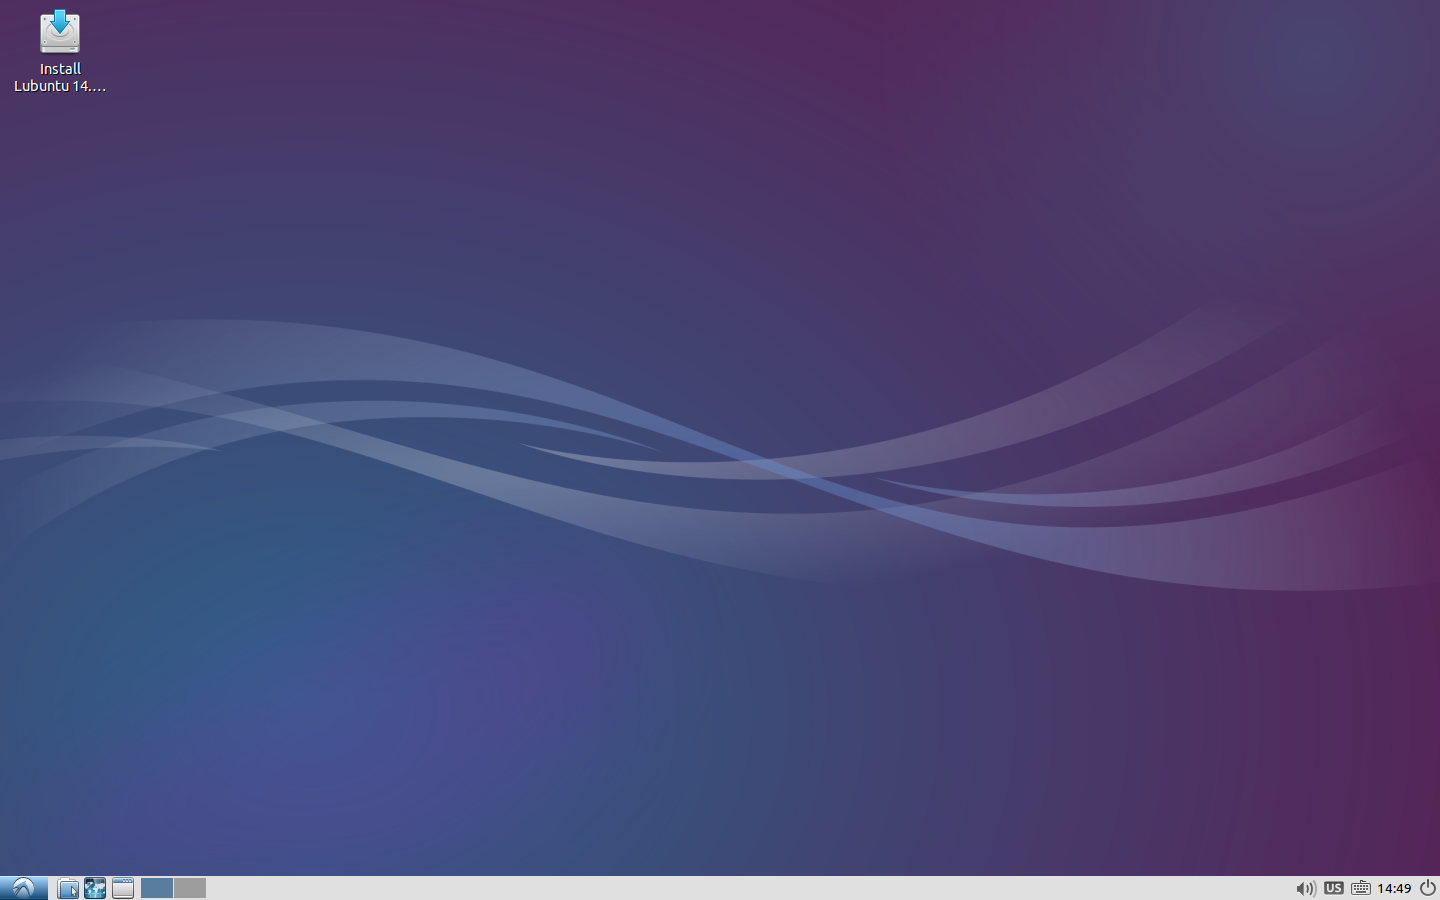 Pep up Lubuntu to make it look Awesome and Cool - Lakshya A